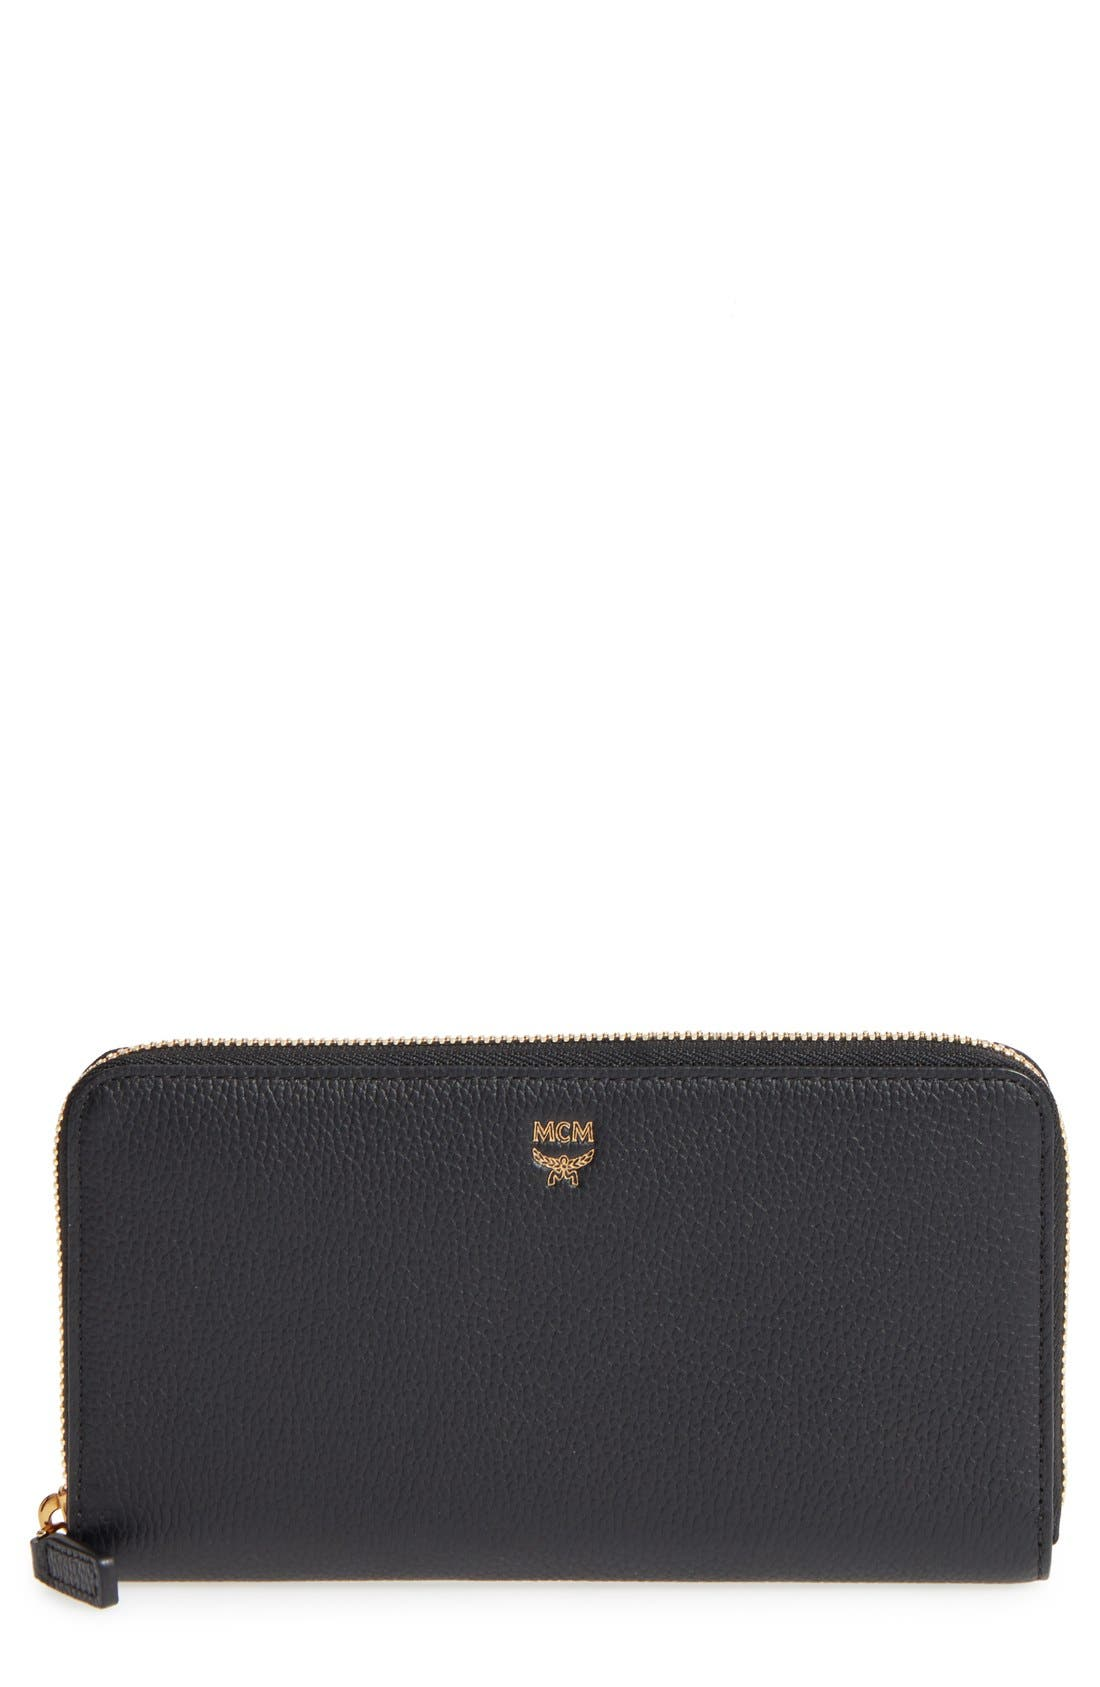 Milla Leather Zip Around Wallet,                         Main,                         color, Black